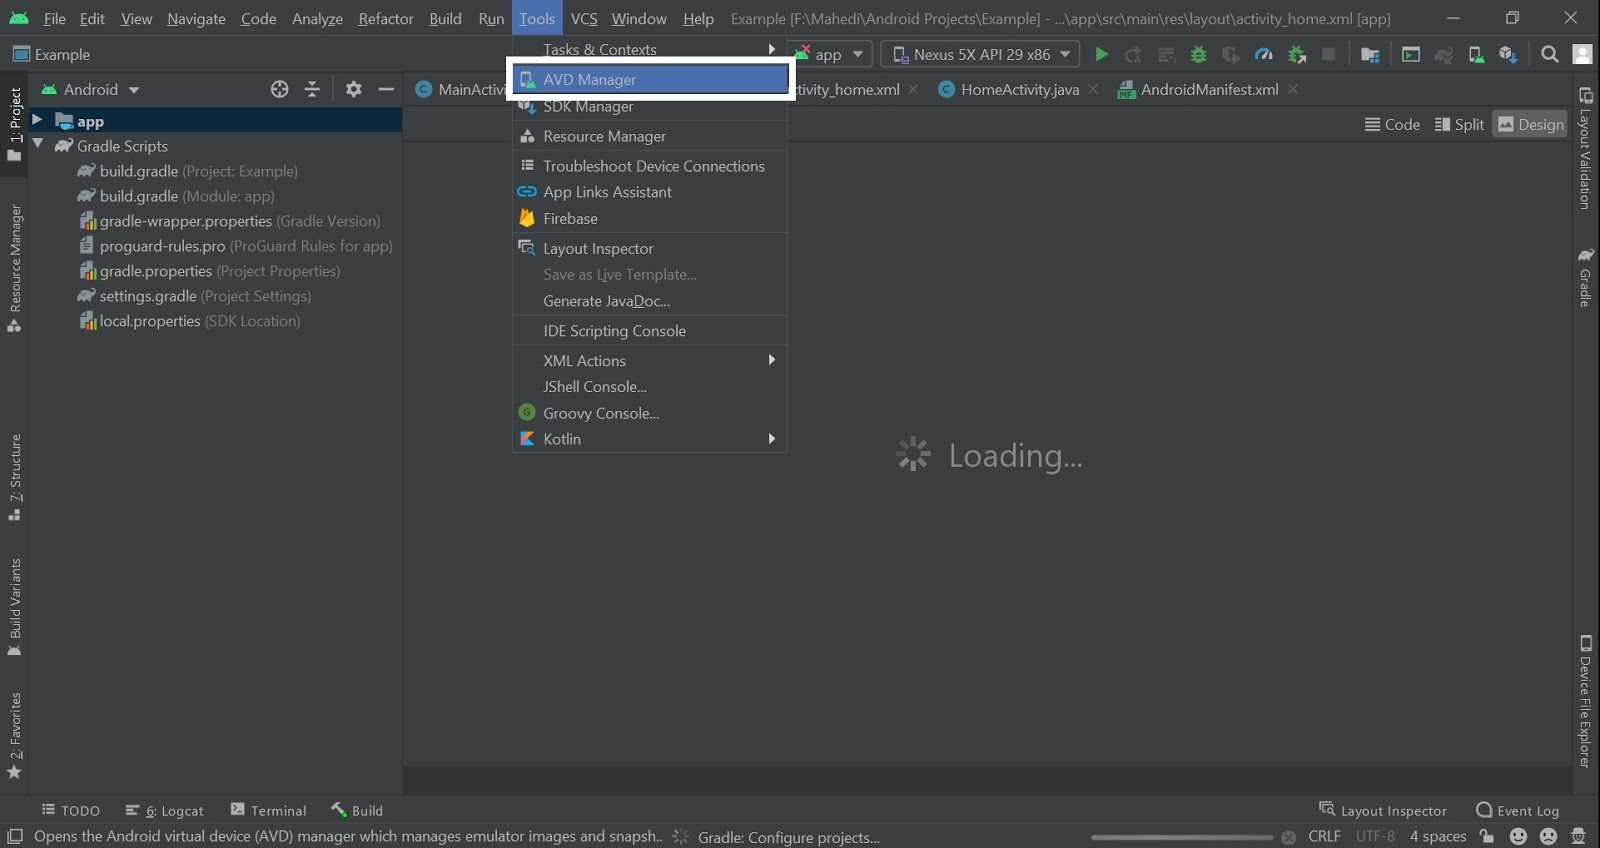 Get Emulator Name From Android Studio